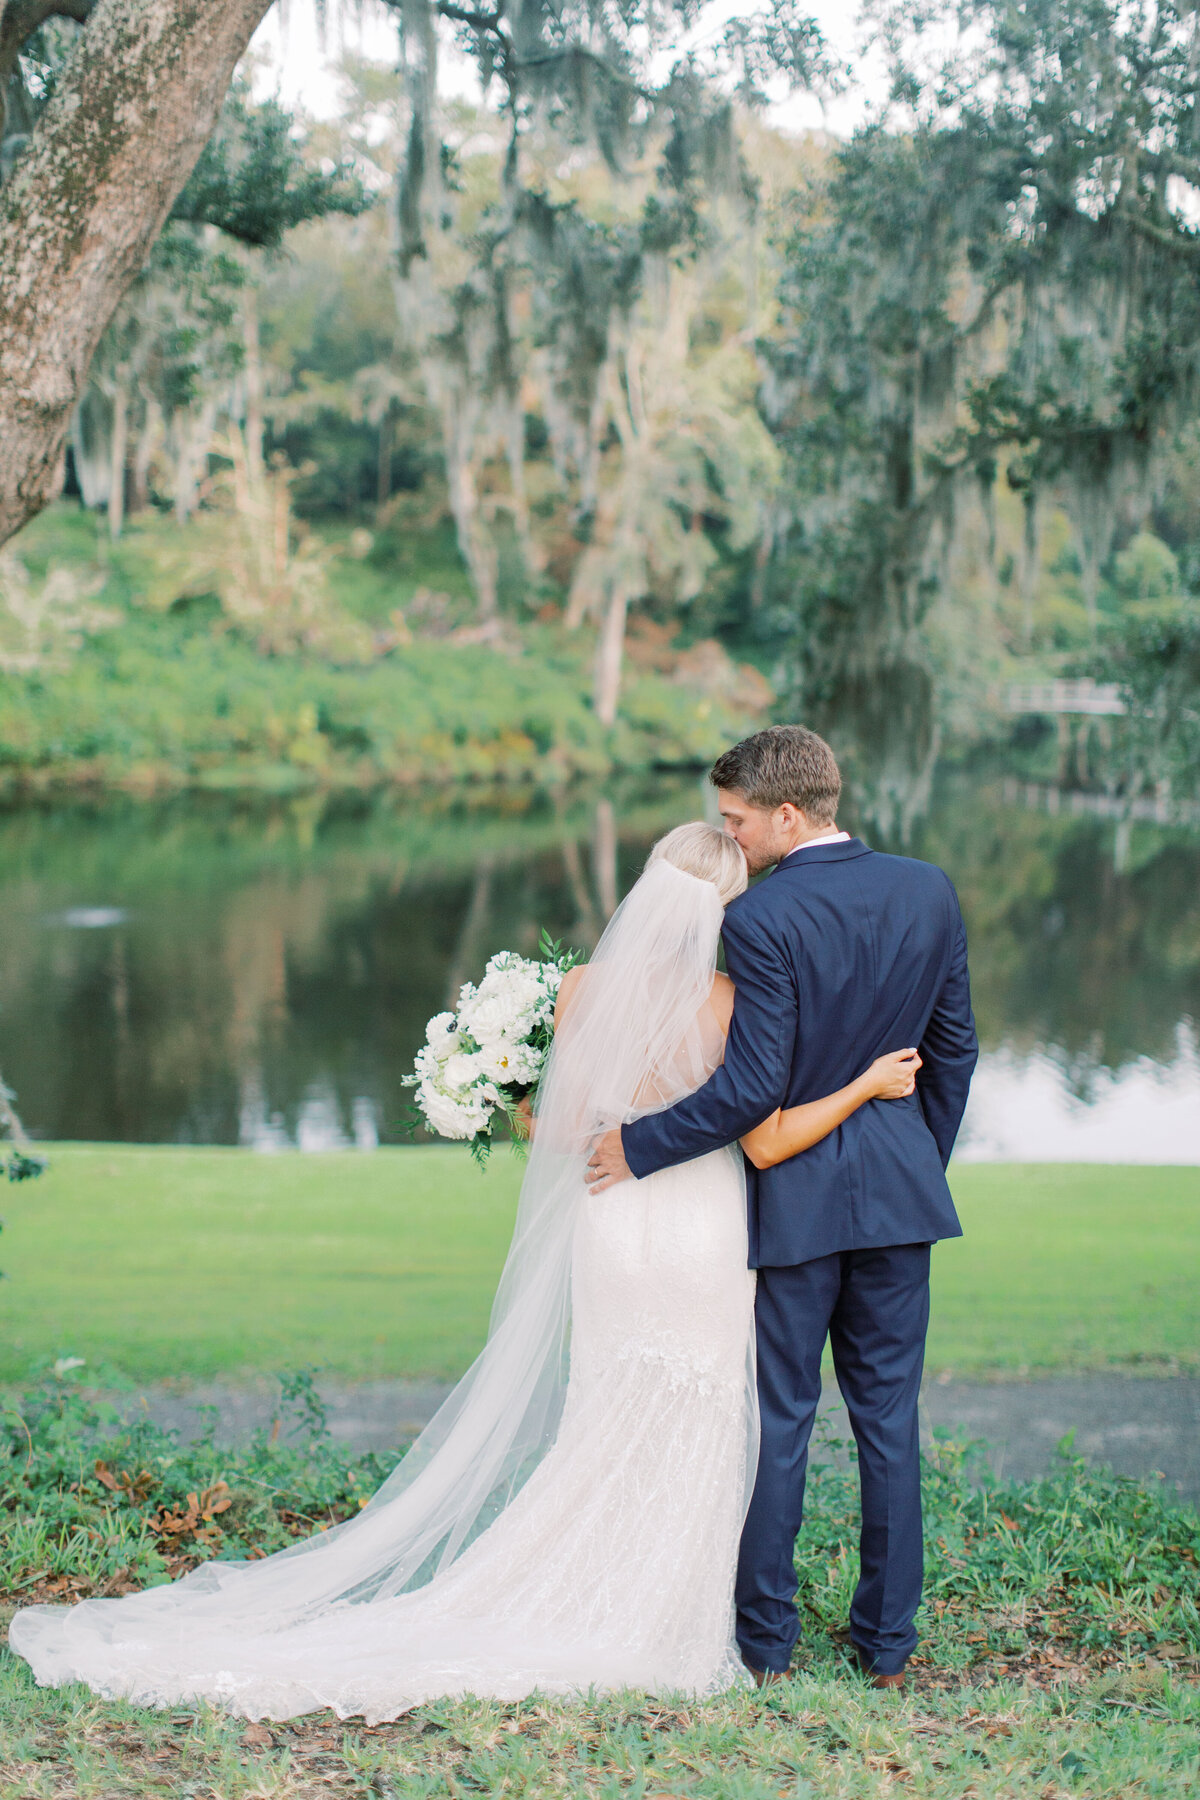 Melton_Wedding__Middleton_Place_Plantation_Charleston_South_Carolina_Jacksonville_Florida_Devon_Donnahoo_Photography__0818